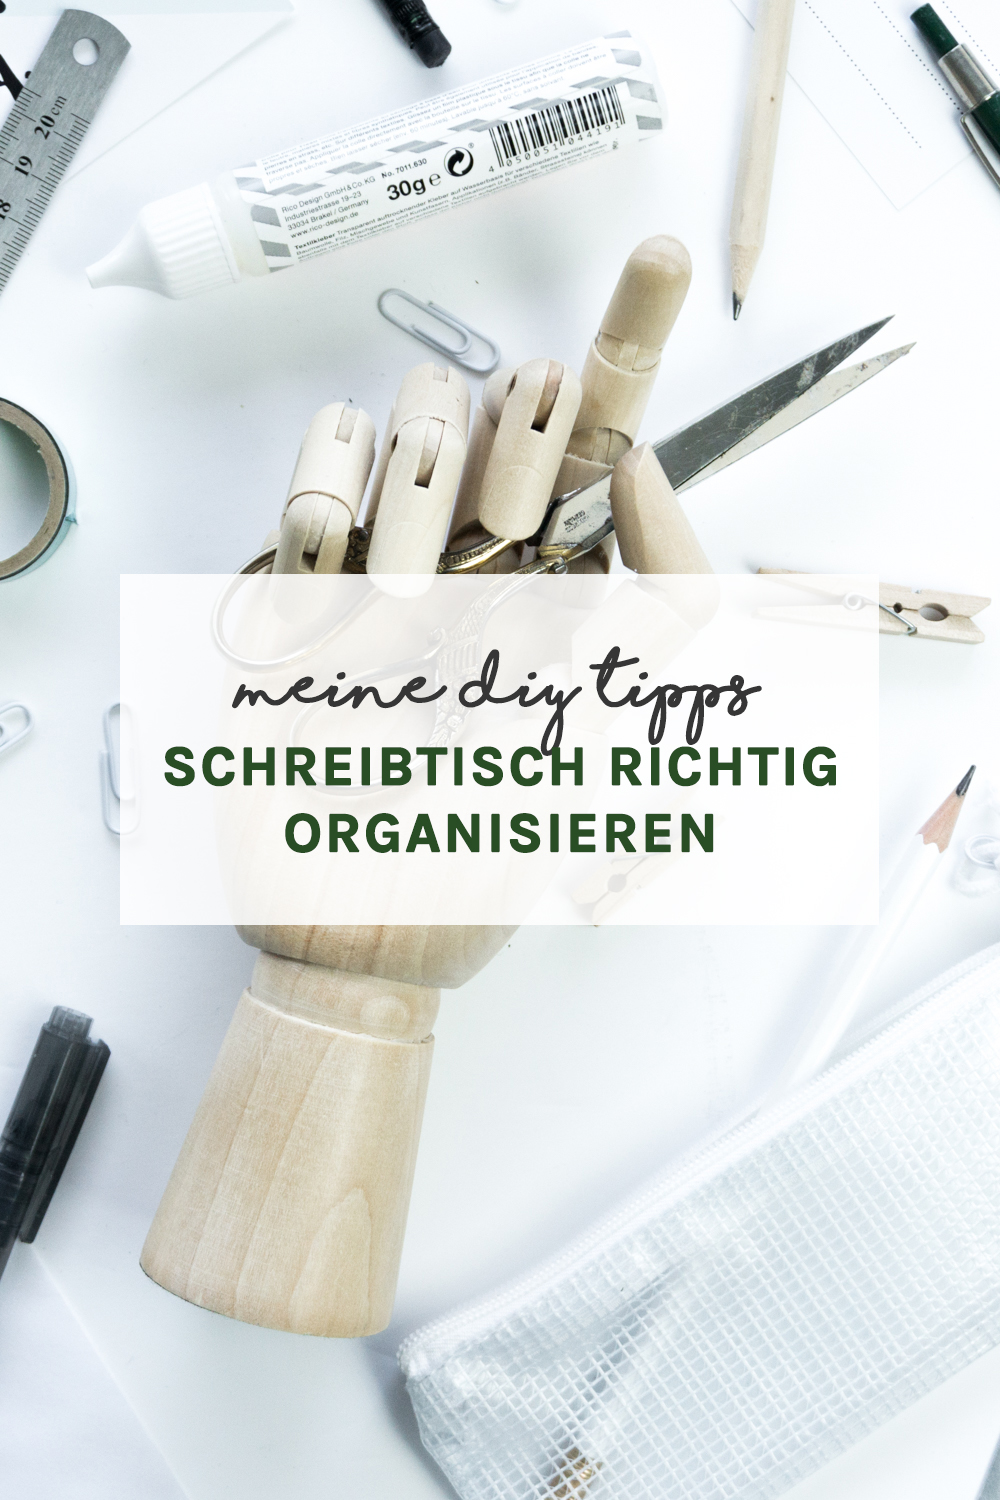 schereleimpapier diy blog schreibtisch organisieren tipps pd schereleimpapier diy blog f r. Black Bedroom Furniture Sets. Home Design Ideas